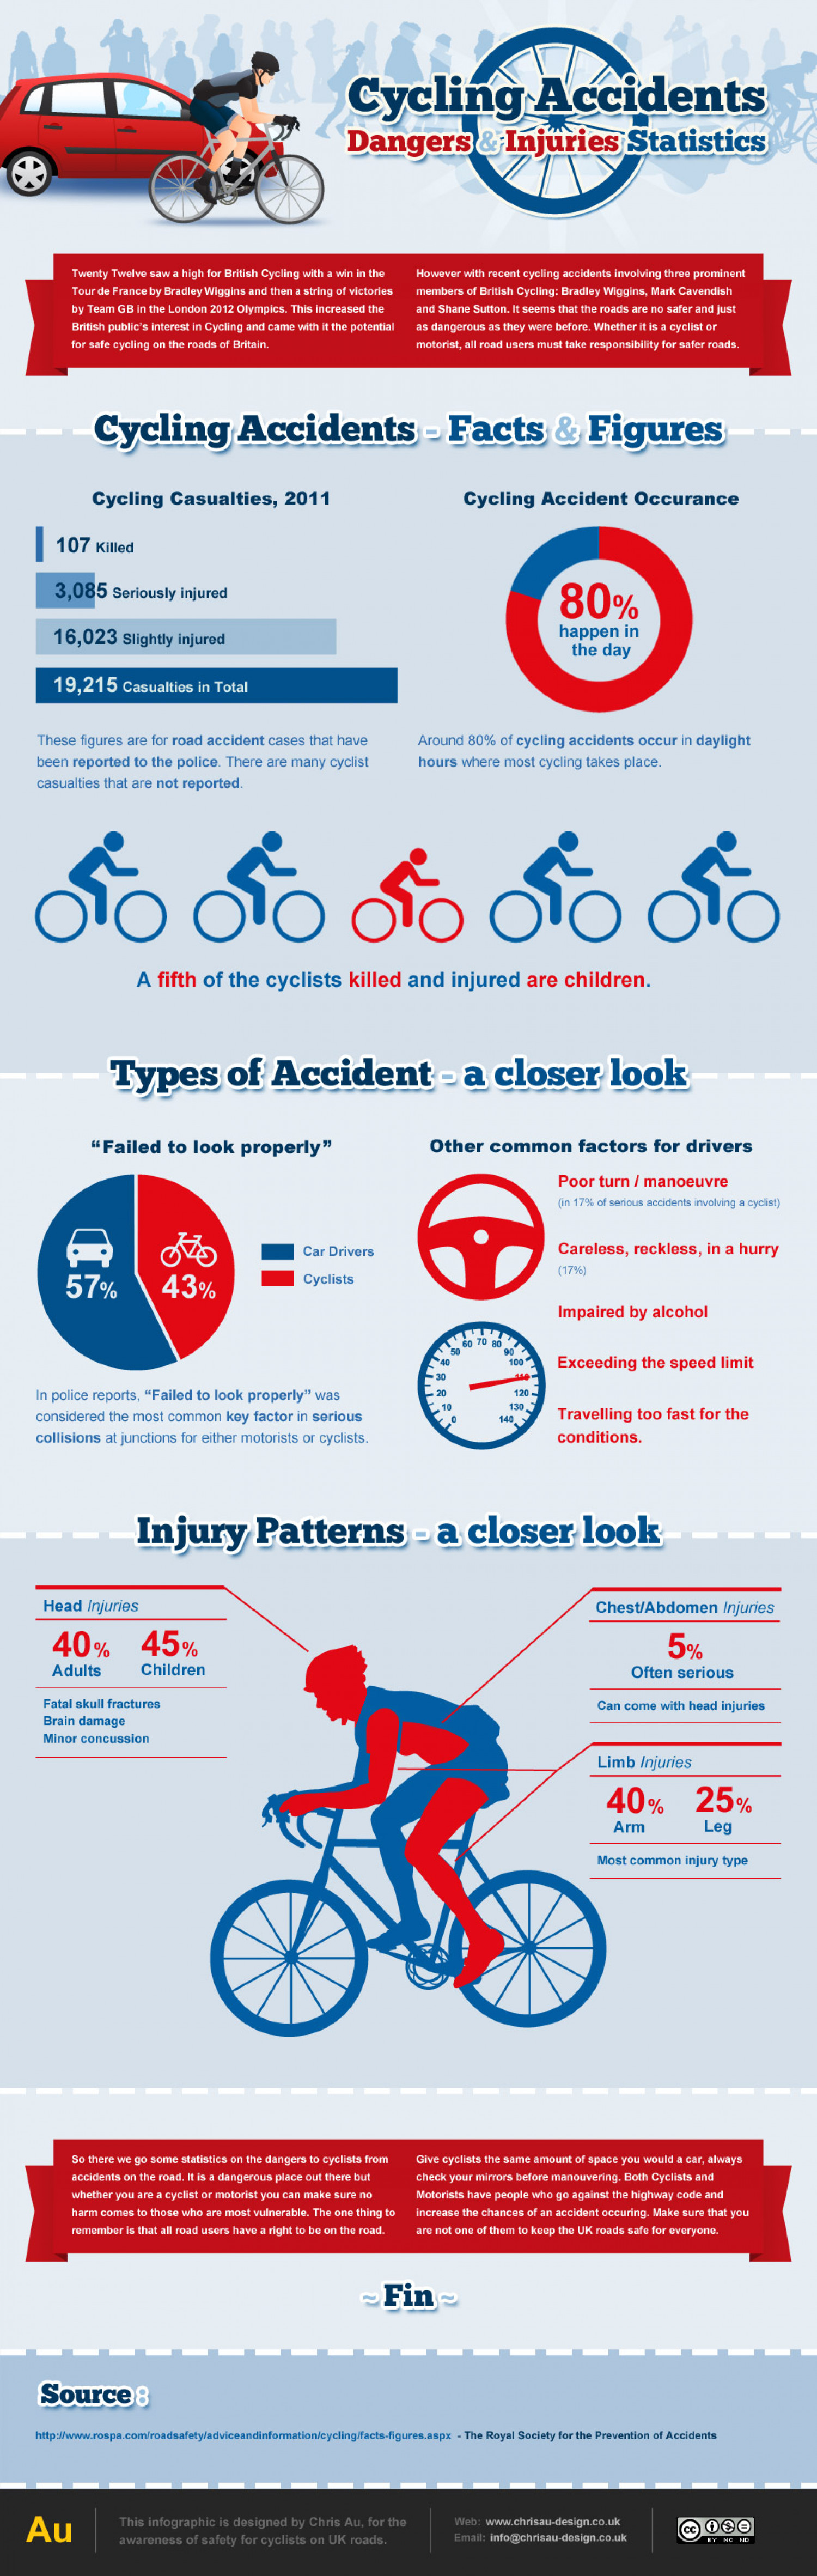 Cycling Accidents Infographic